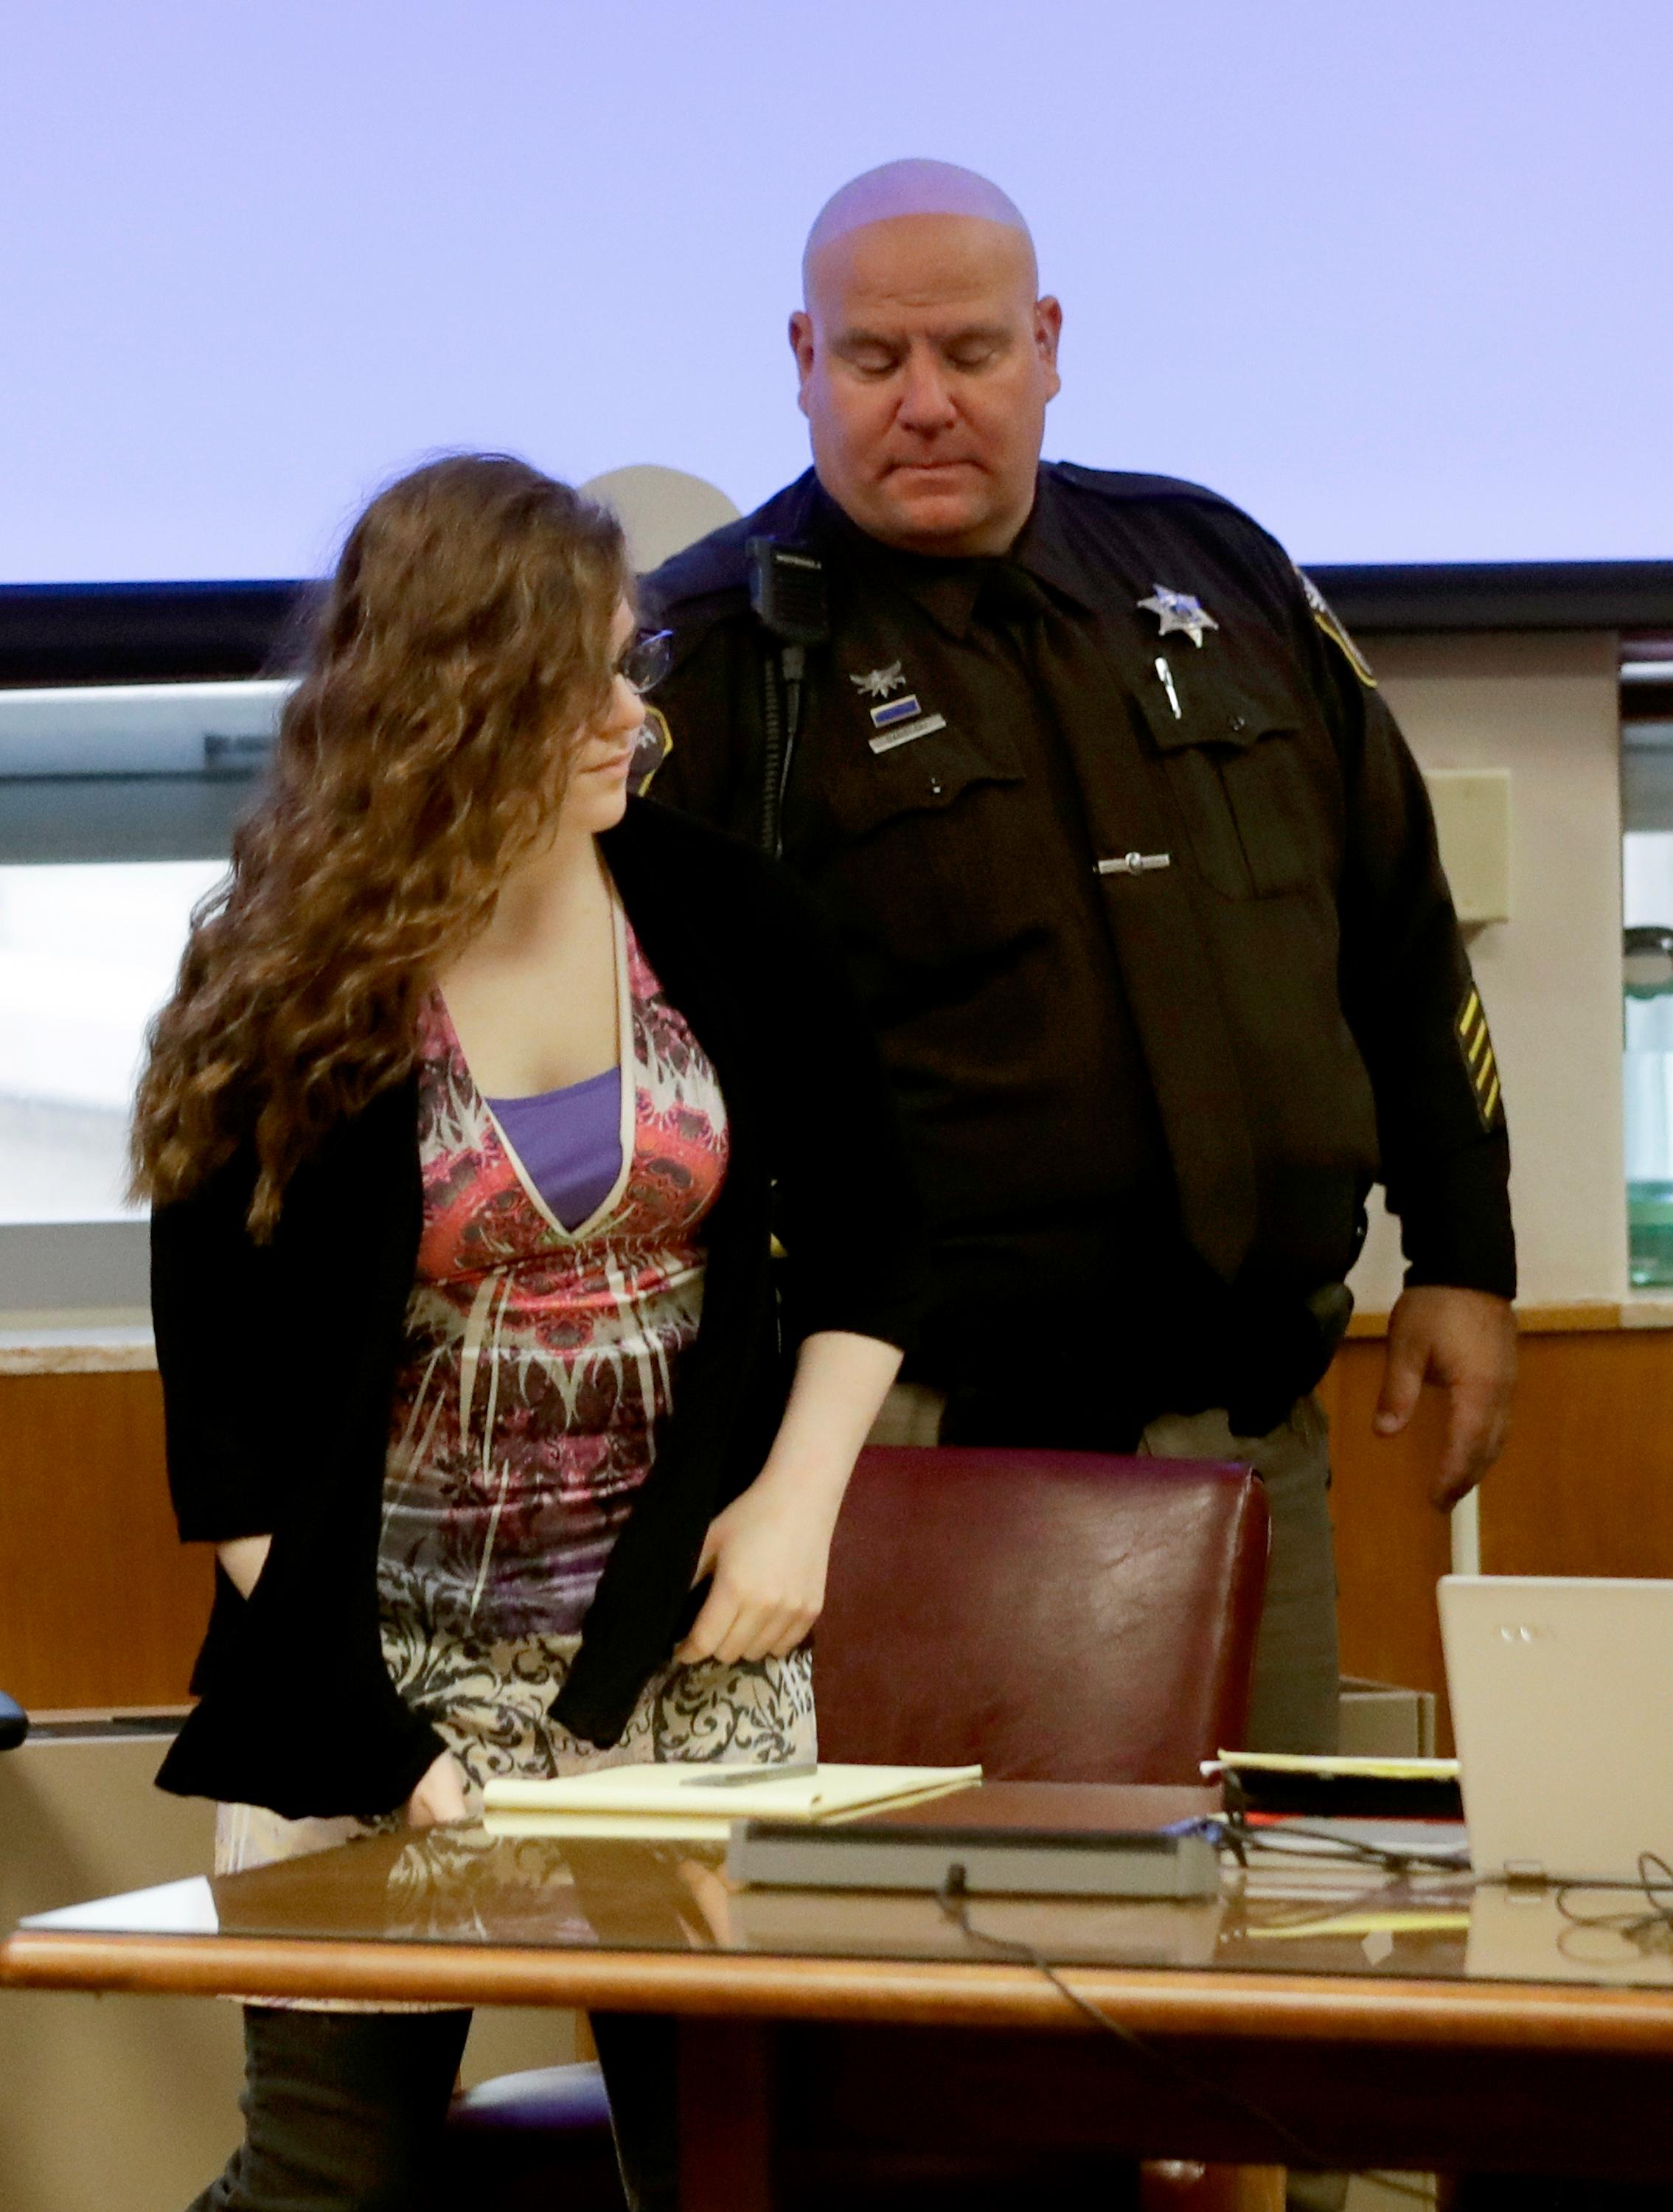 Anissa Weier is led into the courtroom for jury selection in the trial to determine 15-year-old Weier's competency at Waukesha County Courthouse Monday, Sept 11, 2017, in Waukesha, Wis. (AP Photo/Morry Gash, Pool)